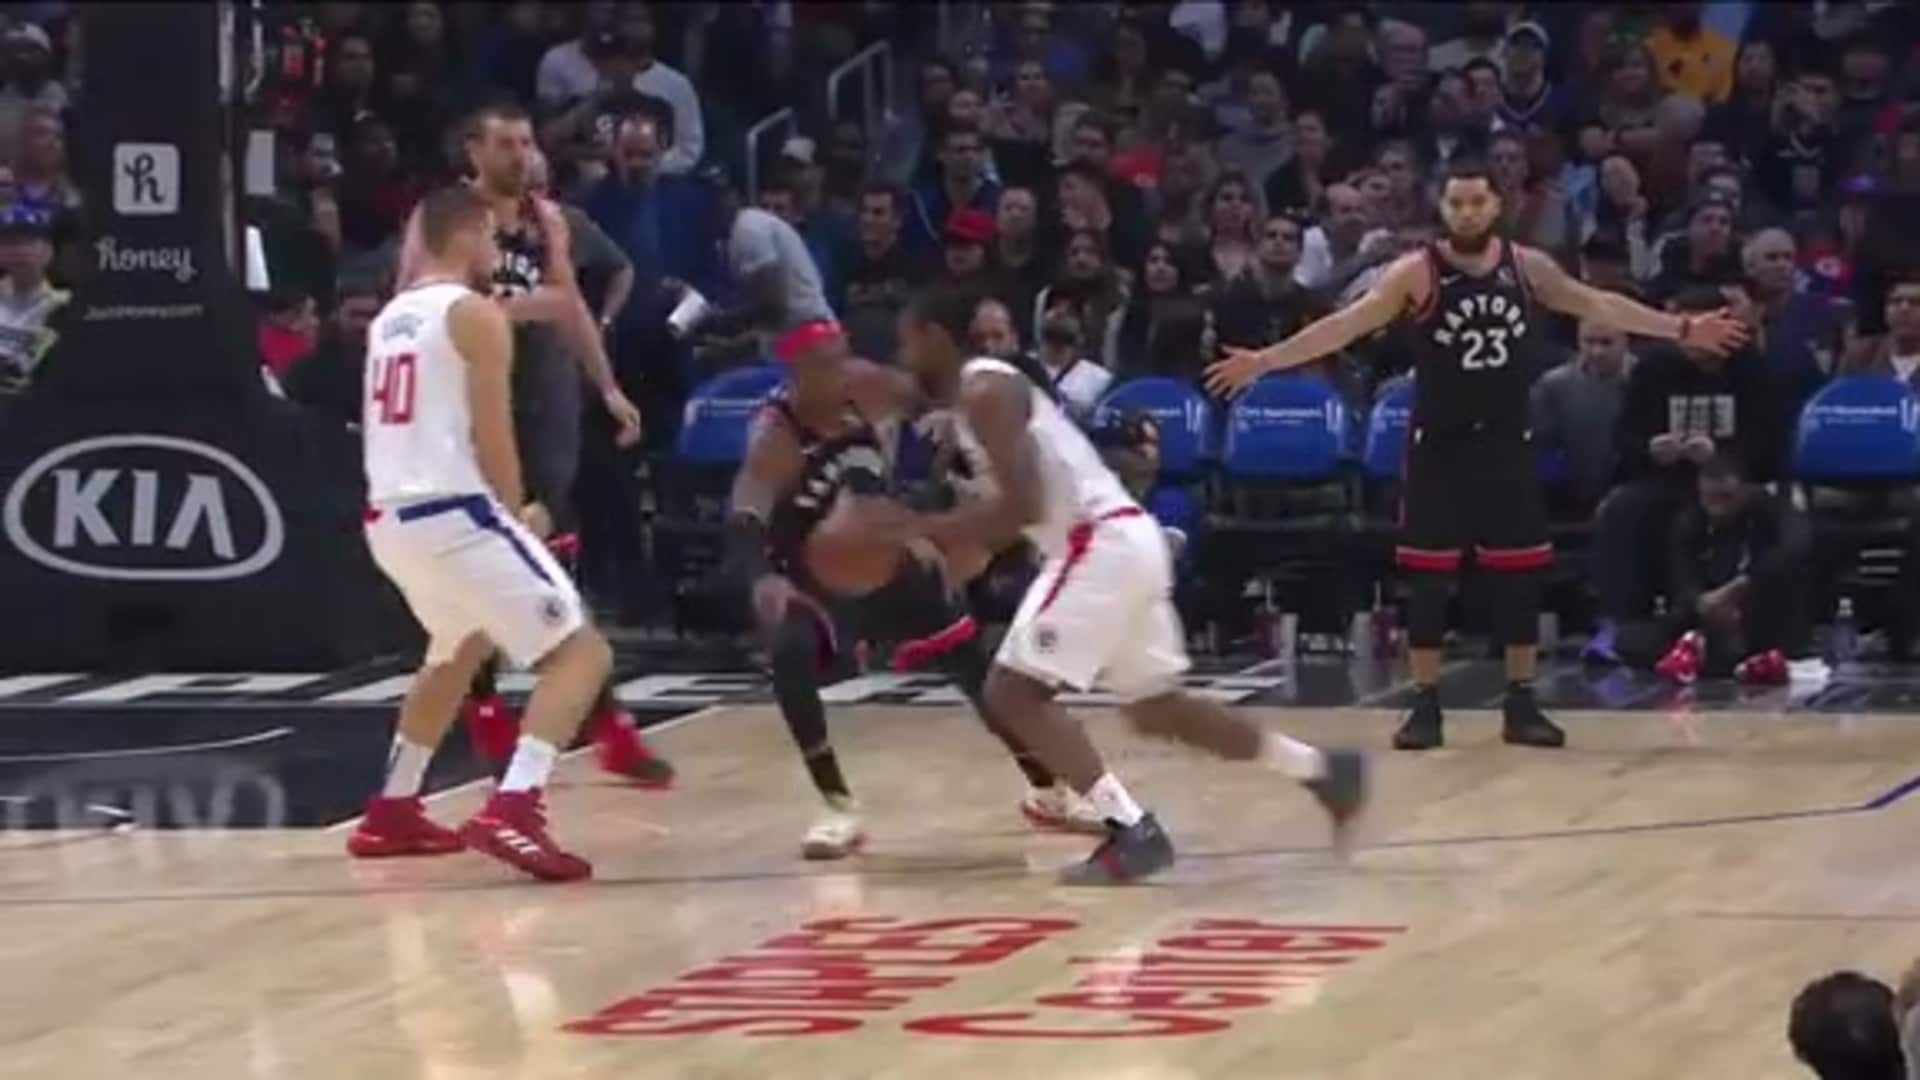 Raptors Highlights: Hollis-Jefferson Steal and Layup - November 11, 2019